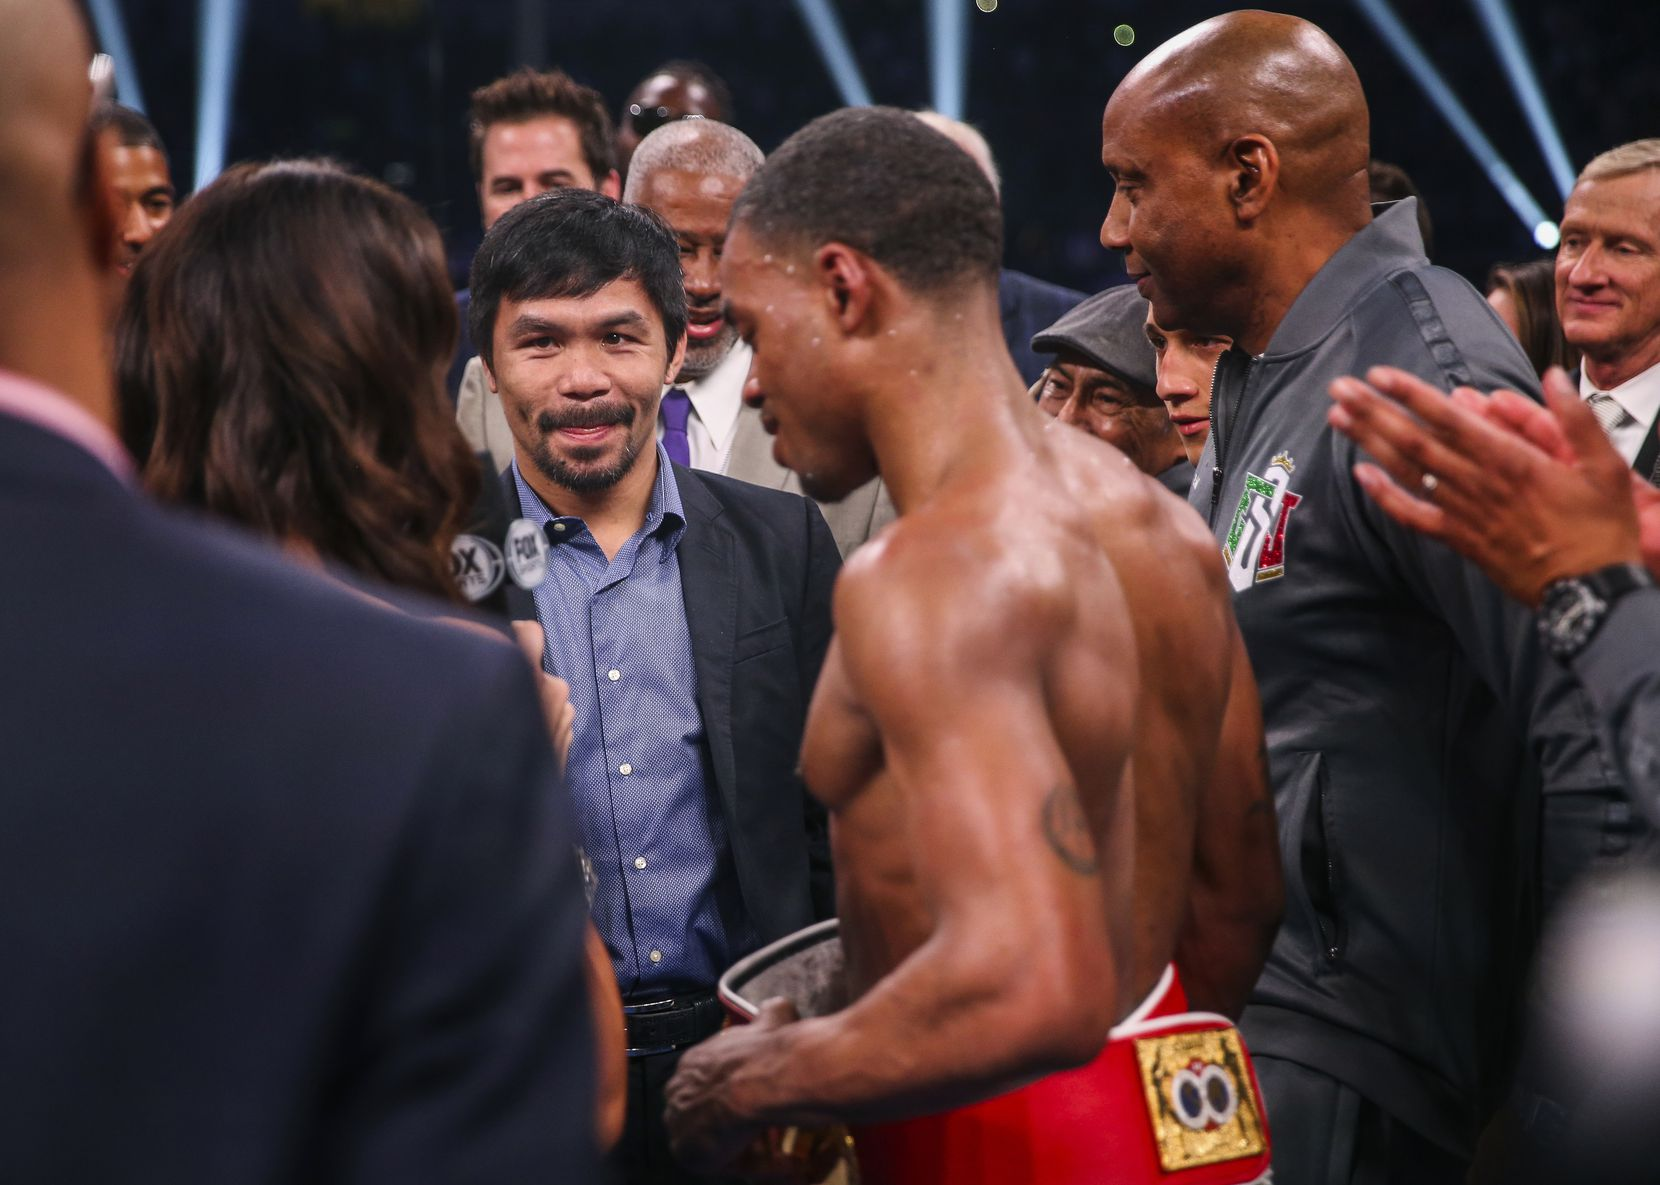 Errol Spence Jr. speaks with Manny Pacquiao onstage following his win over Mikey Garcia in a IBF World Welterweight Championship match on March 16, 2019, at AT&T Stadium in Arlington.